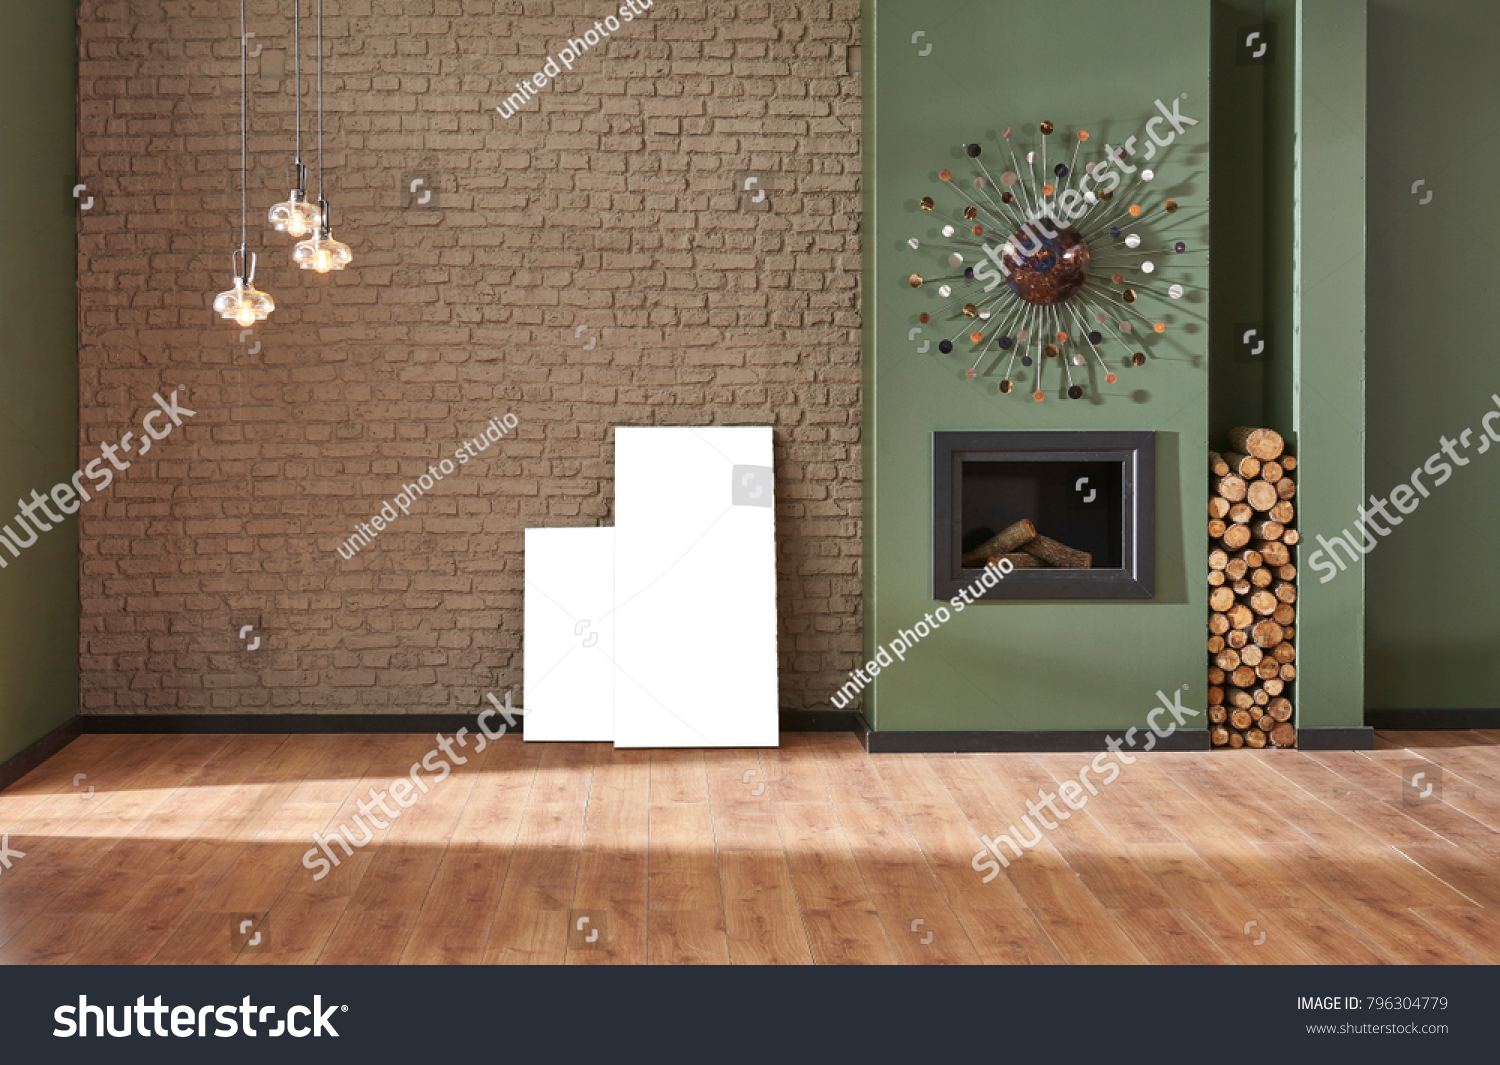 decor design green and brown living room decor interior design brown brick wall and green wall living room decoration fireplace and home  ornaments interior style